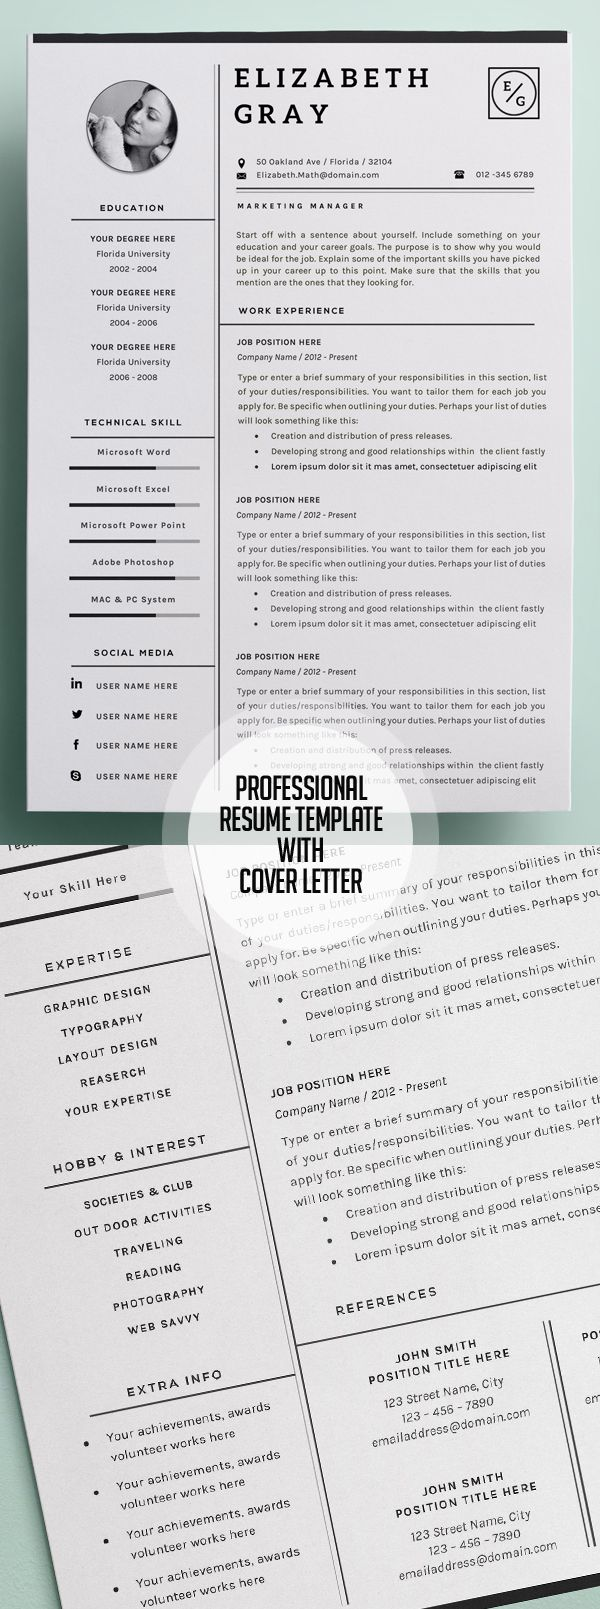 Opposenewapstandardsus  Stunning  Resume Ideas On Pinterest  Resume Resume Templates And  With Outstanding Professional And Modern Resume Template With Page Cover Cvtemplate With Easy On The Eye Entry Level Social Work Resume Also Retail Sales Associate Resume Sample In Addition How To Start Off A Resume And Project Based Resume As Well As Experience In Resume Additionally Resume Nanny From Pinterestcom With Opposenewapstandardsus  Outstanding  Resume Ideas On Pinterest  Resume Resume Templates And  With Easy On The Eye Professional And Modern Resume Template With Page Cover Cvtemplate And Stunning Entry Level Social Work Resume Also Retail Sales Associate Resume Sample In Addition How To Start Off A Resume From Pinterestcom